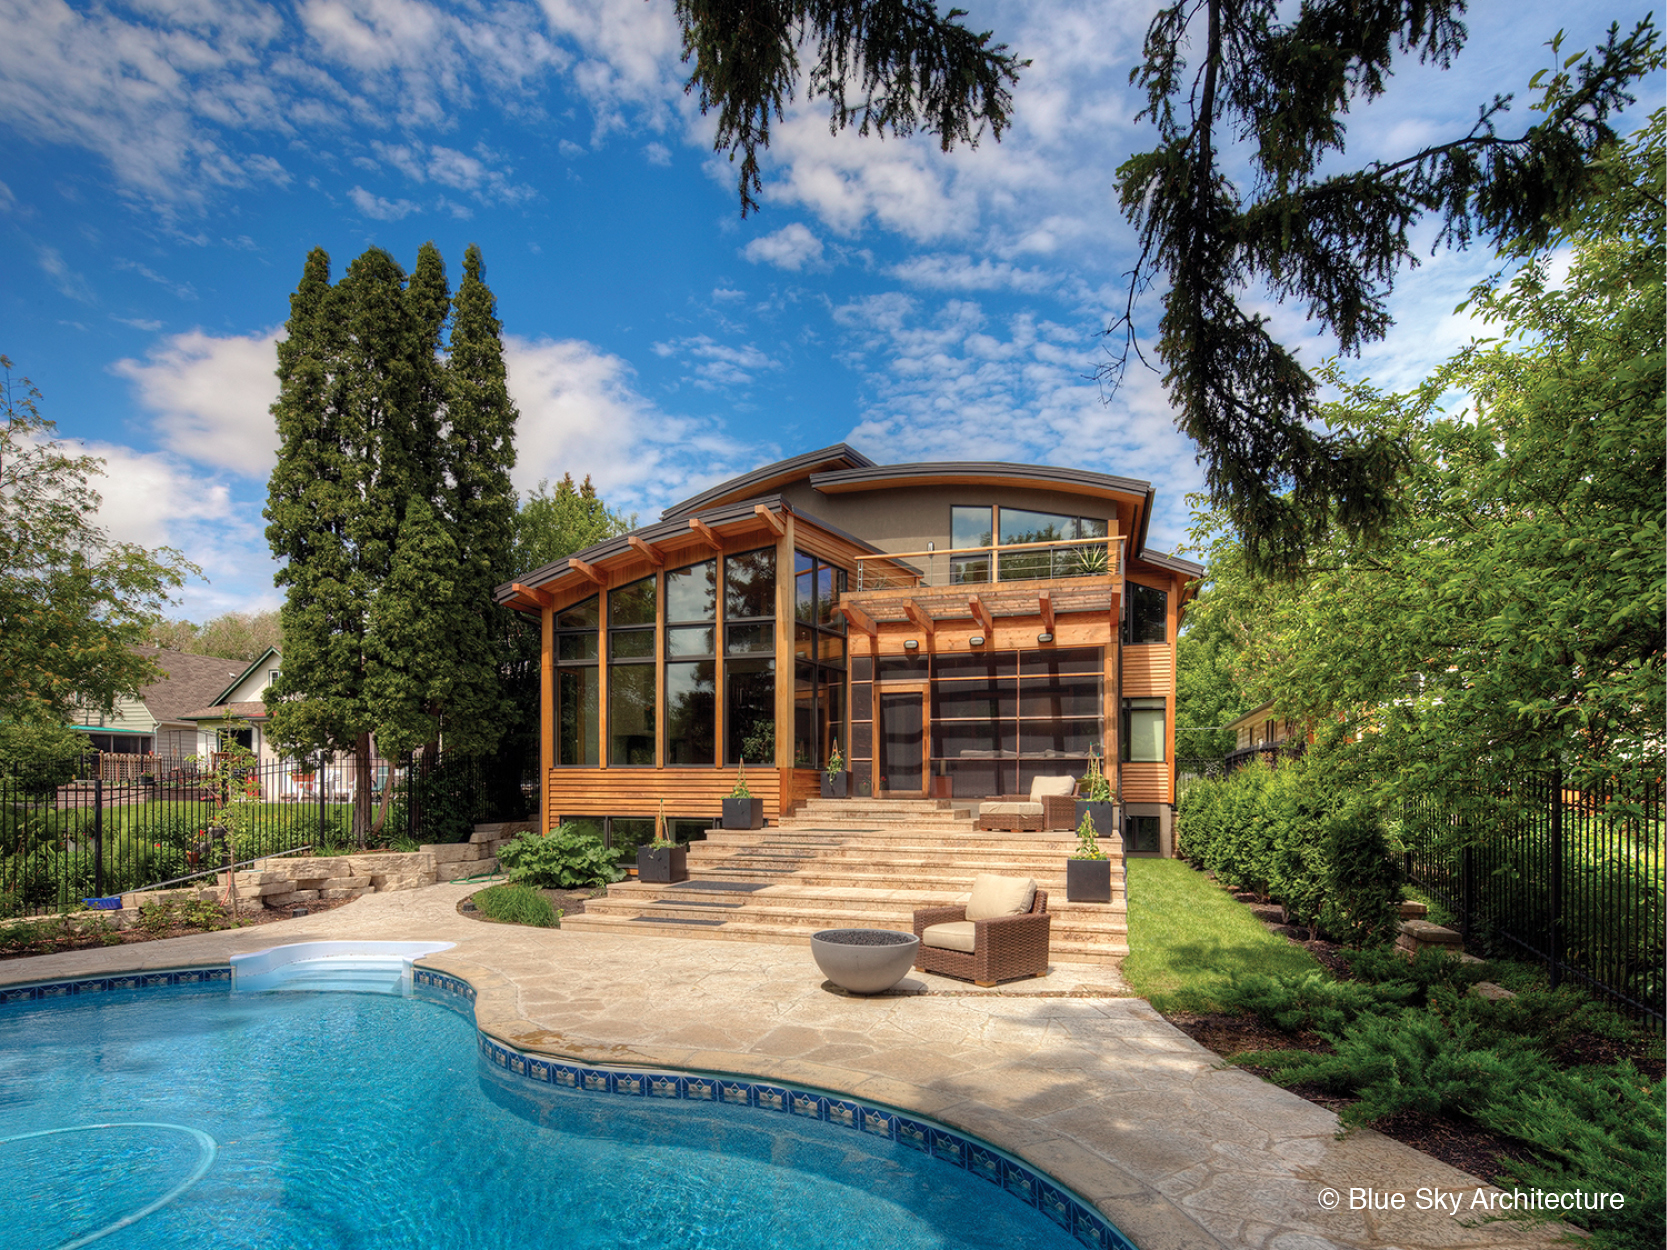 Assiniboine River house's organic architecture exterior, with terrace and pool